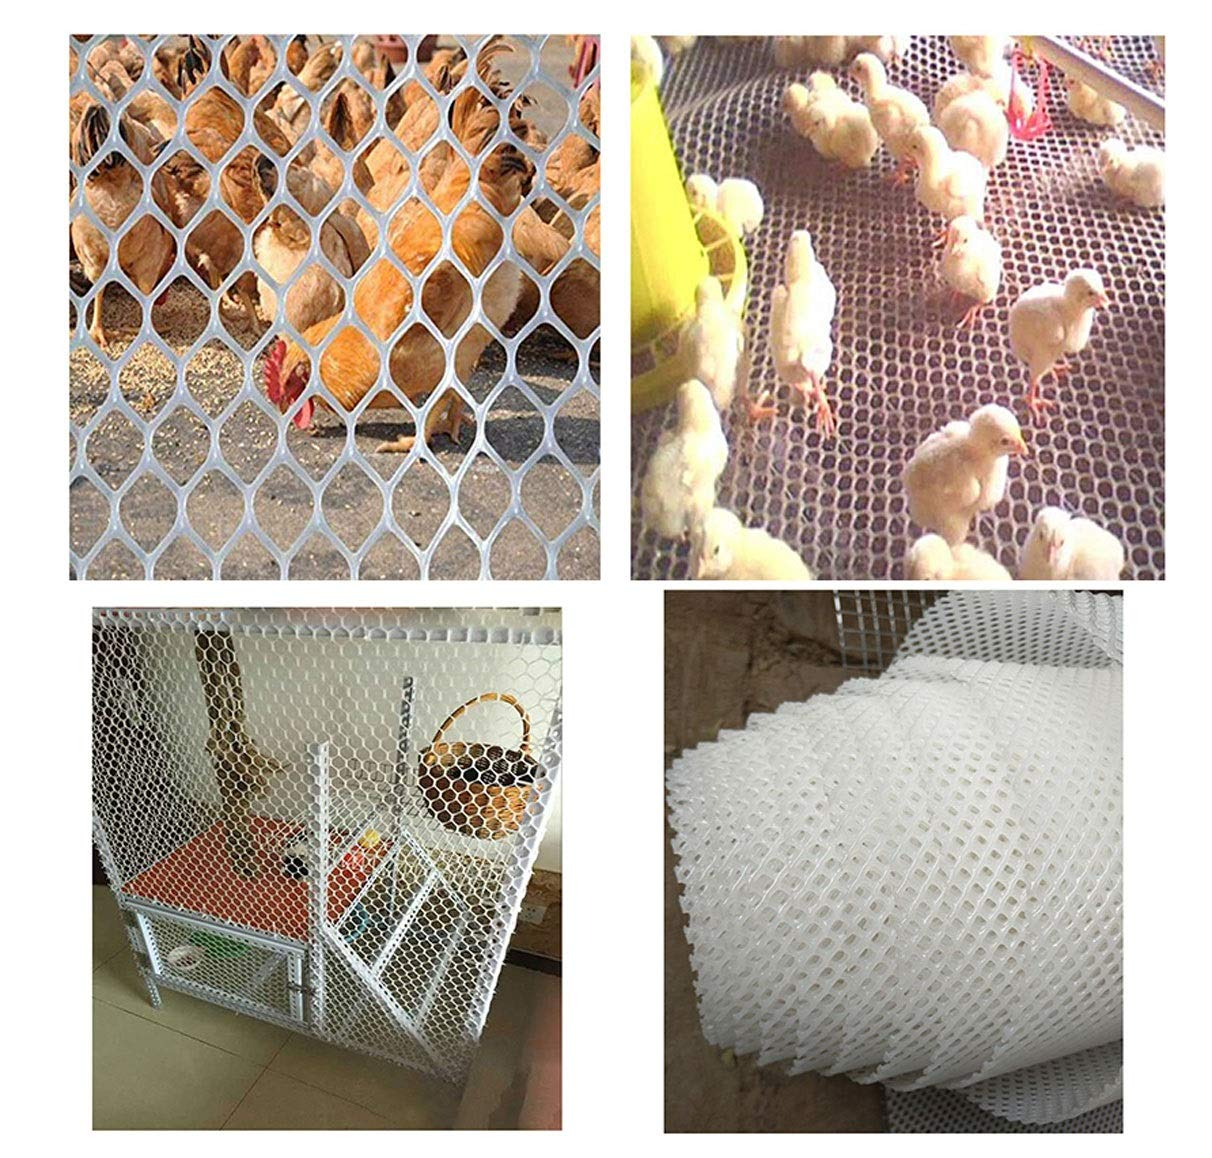 Plastic Garden Net Mesh Barrier Safety Fence Netting Balcony Stairs Safety Fence Chicken Net Cat Net Plant Support Fence (Size : 2 * 50m) NNFHW ♦ Plastic safety mesh with a diameter of 1.8cm prevents children's head and body from falling through the railing and prevents toys and shoes from falling from the gap between the armrests. It can even be used as a pet safety door. Provide a safe gaming environment for children. ♦ Lawn protective grilles are used to reinforce large areas of flat surfaces, especially parks and lawn areas, slopes and embankments. The turf grid increases the load-bearing capacity of the soil. Effectively prevents the formation of ruts. Suitable for short-term parking, driveways, etc. ♦ Plastic flat net waterproof, wear-resistant, tough, light weight, long service life, non-toxic and tasteless, high transparency. Ideal for interior and exterior of residential buildings such as railings, stairs, cots, hallways, balconies, etc. The honeycomb design does not interfere with your view. 3